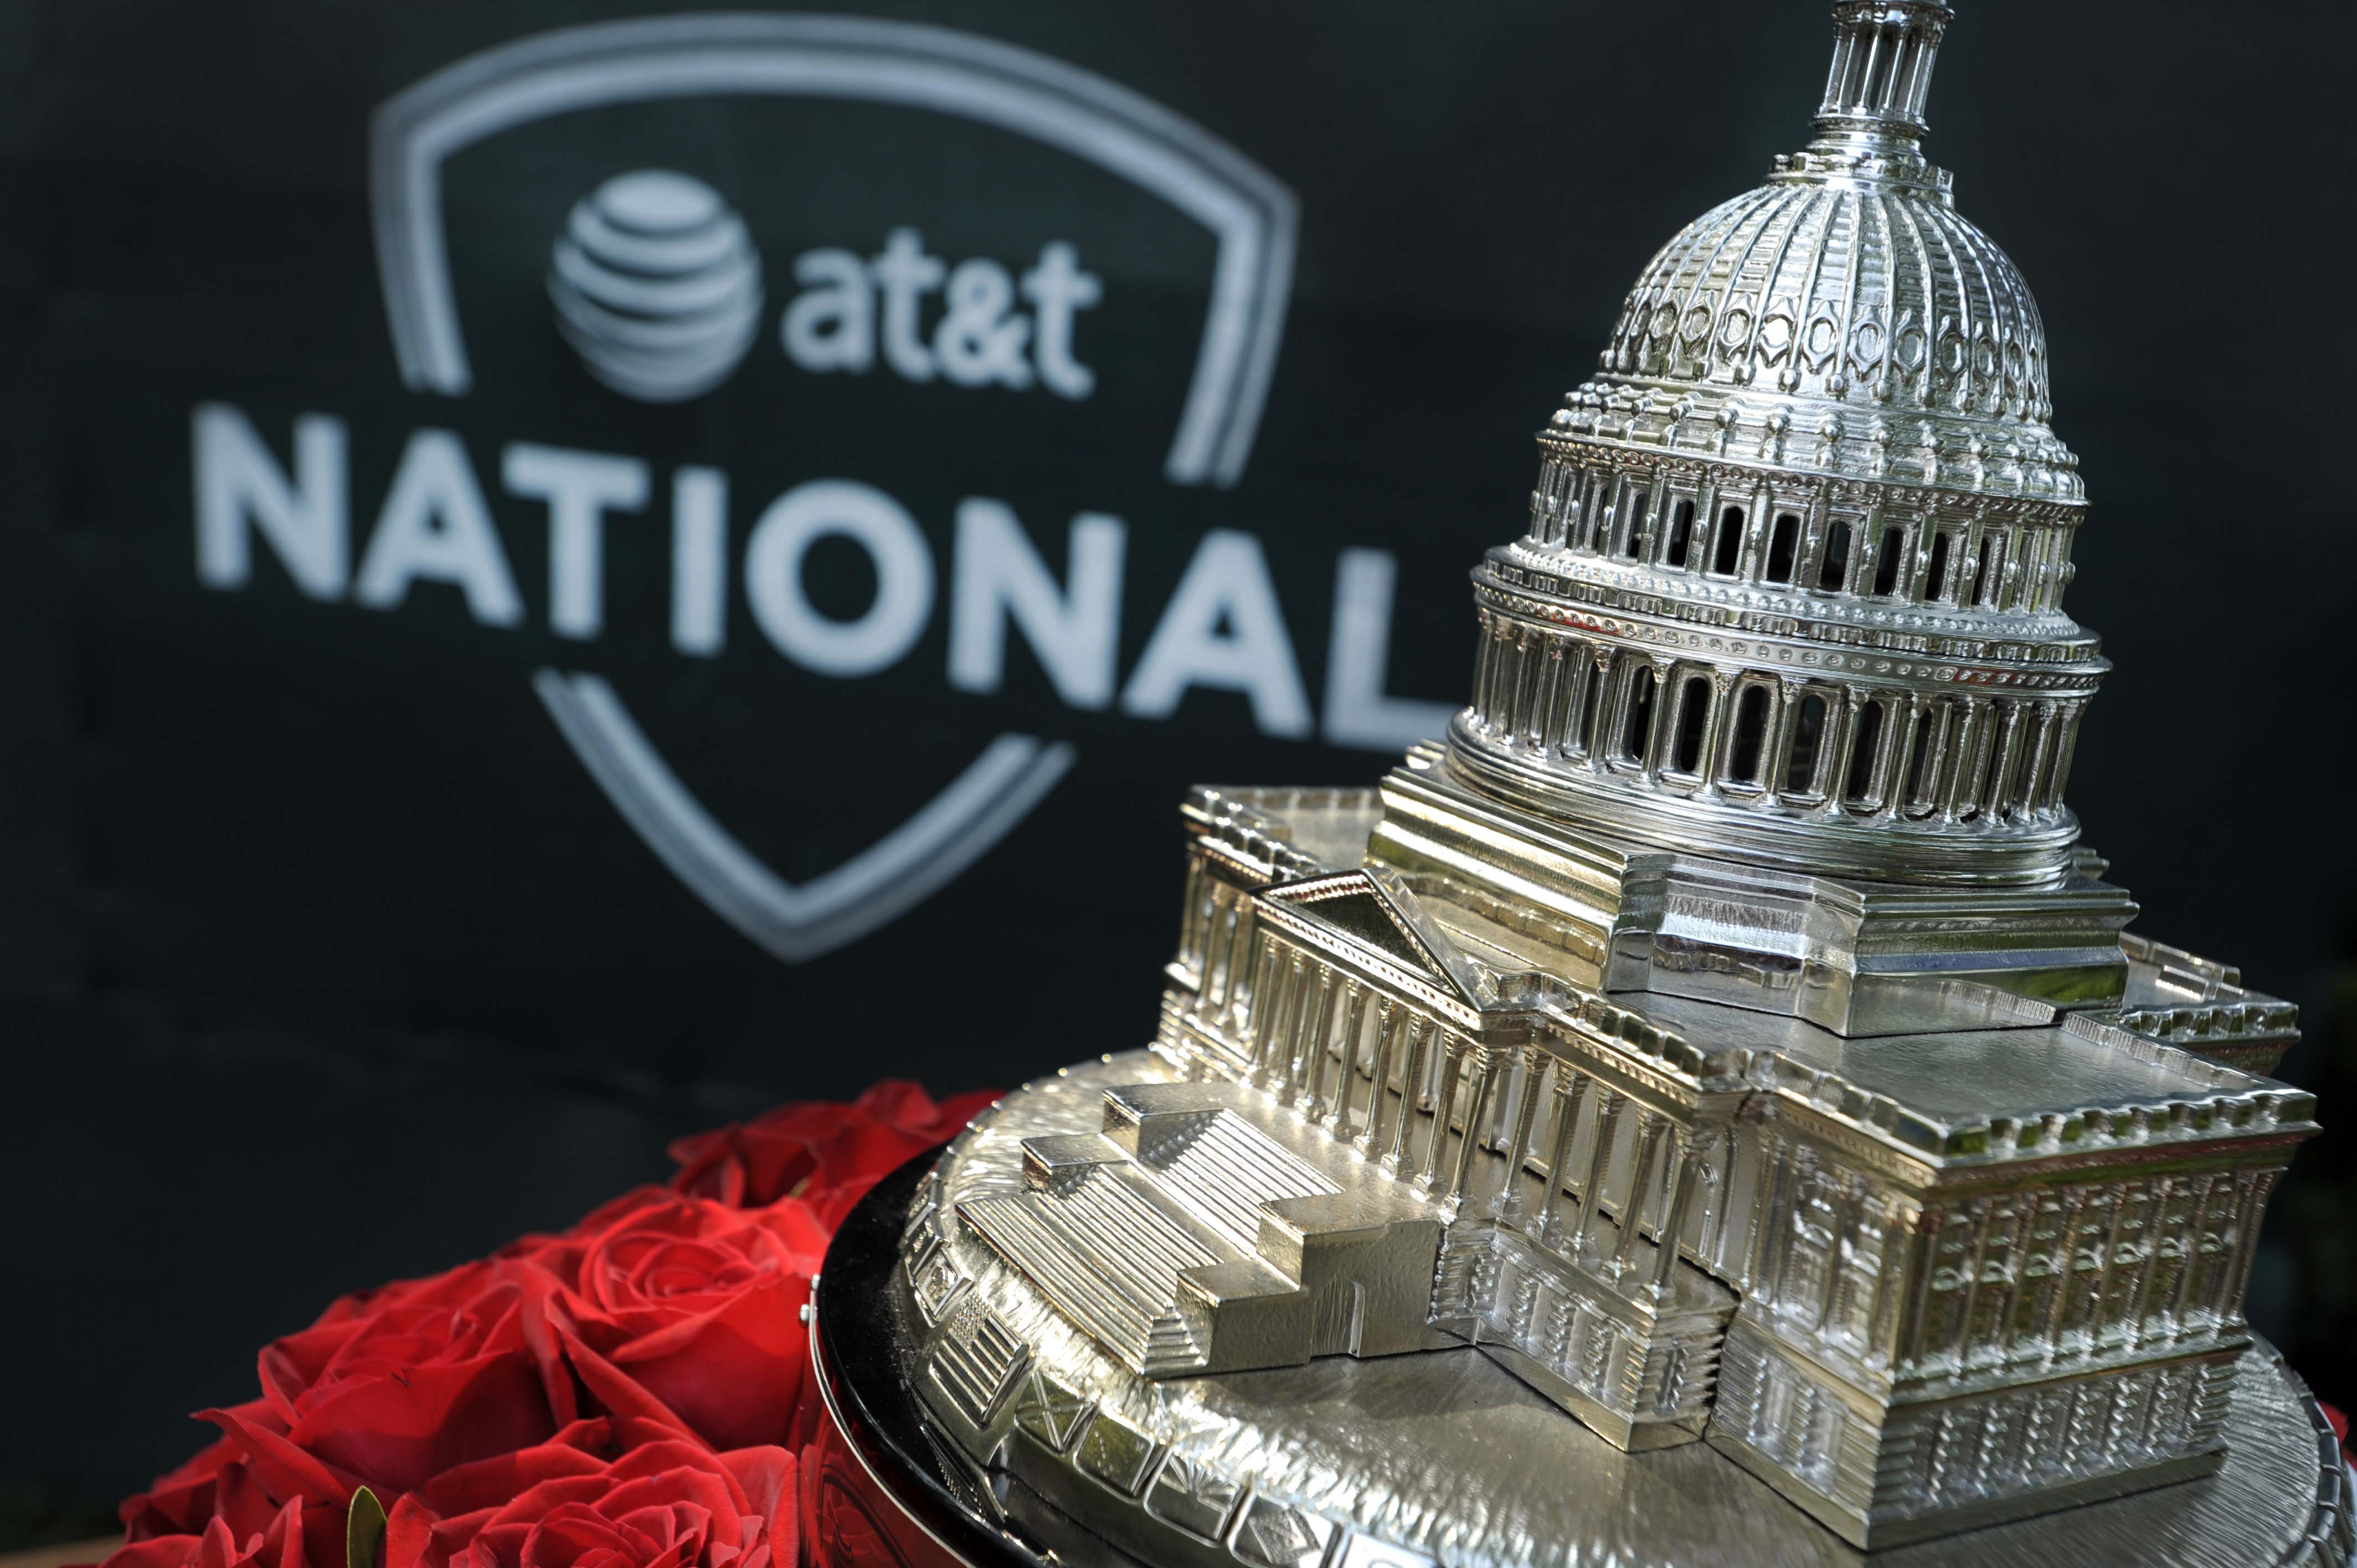 AT&T National winner's trophy